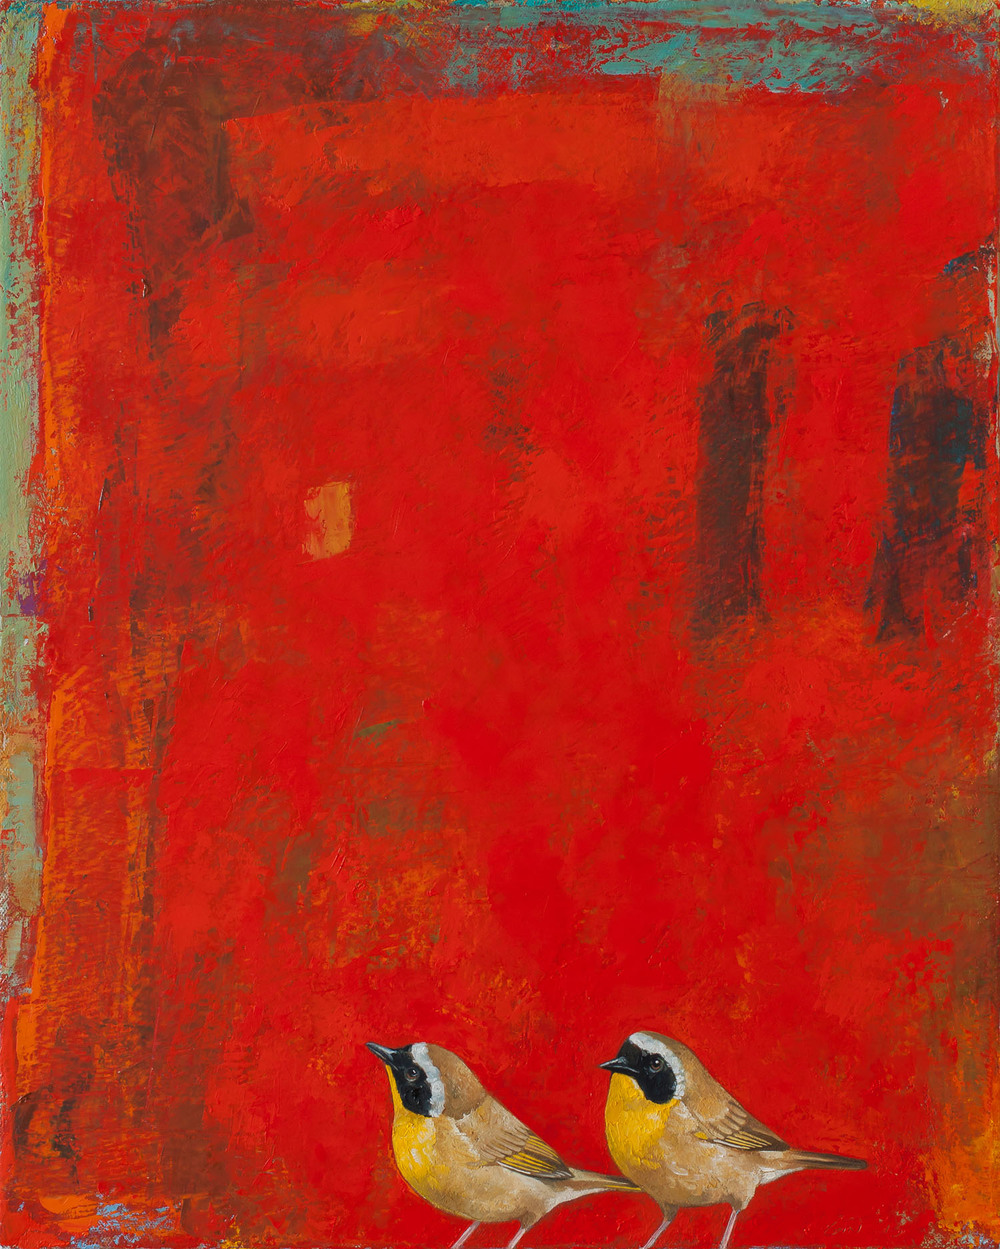 Two by Two   2013 oil on panel 20 x 16 inches  Private collection